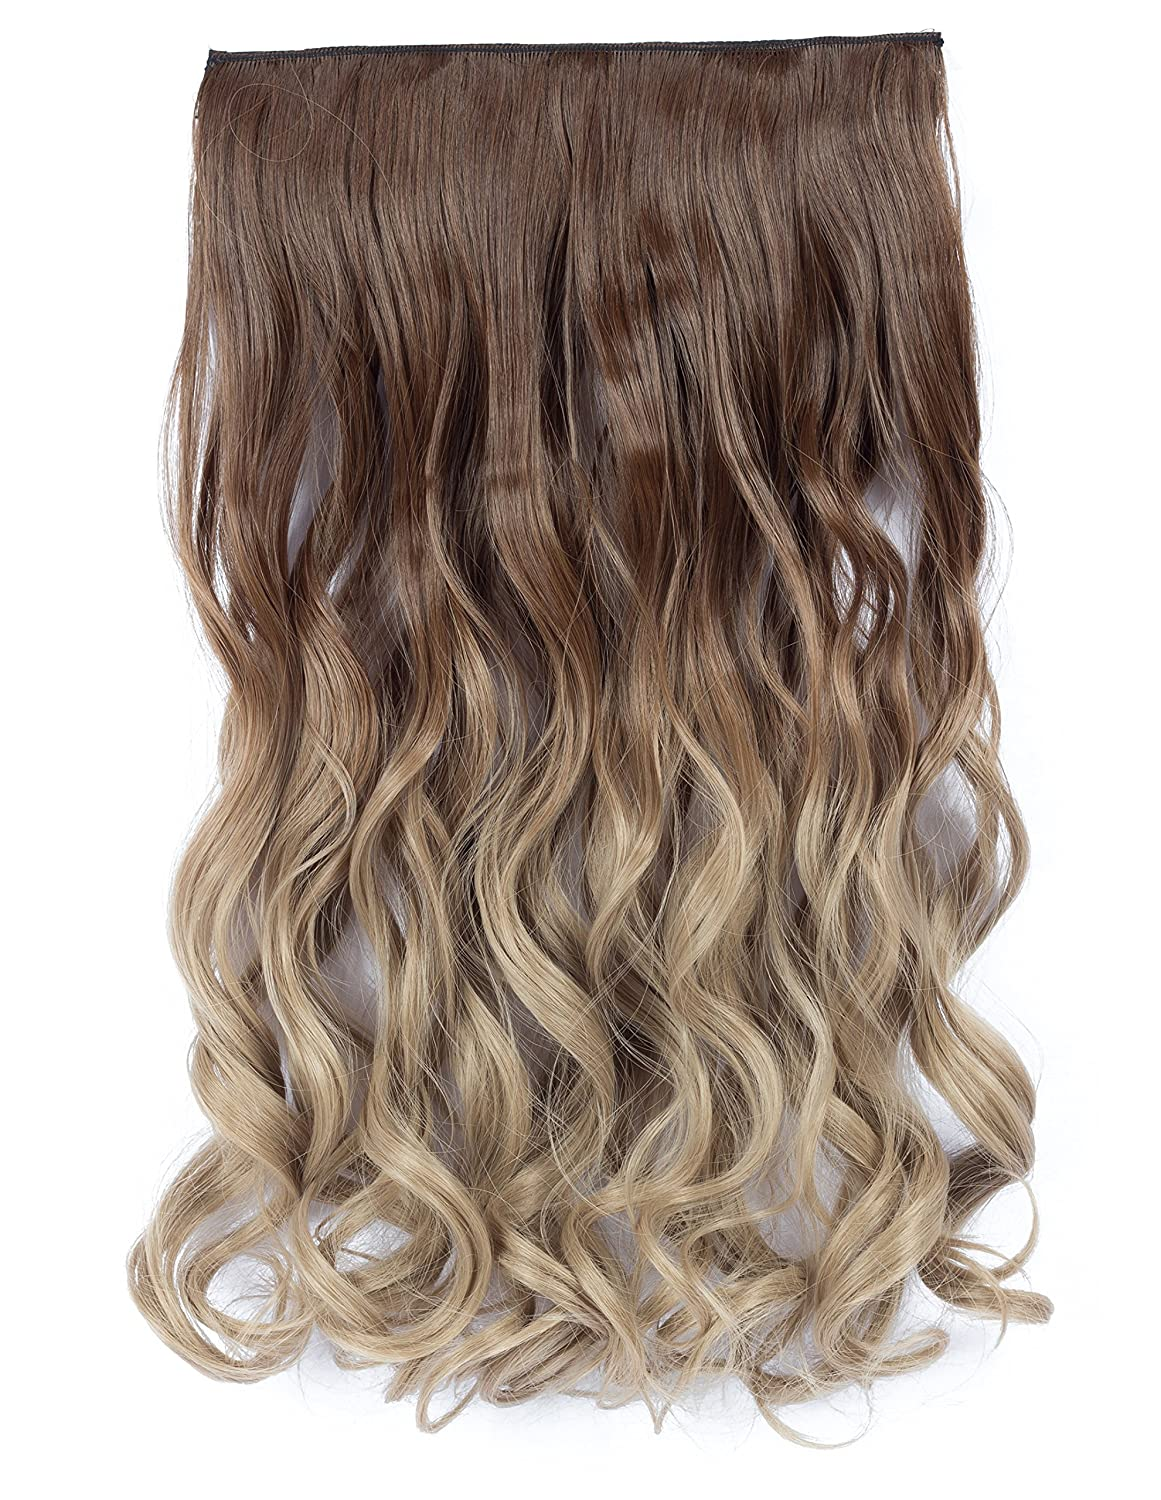 Amazon.com   Beautyself One Piece Ombre Hair Extensions Thick 2 Tones Long  Wavy Clip in Curly Hair Pieces Women Golden Brown to Light Golden Blonde  ( 10T16) ... 13be863ffa